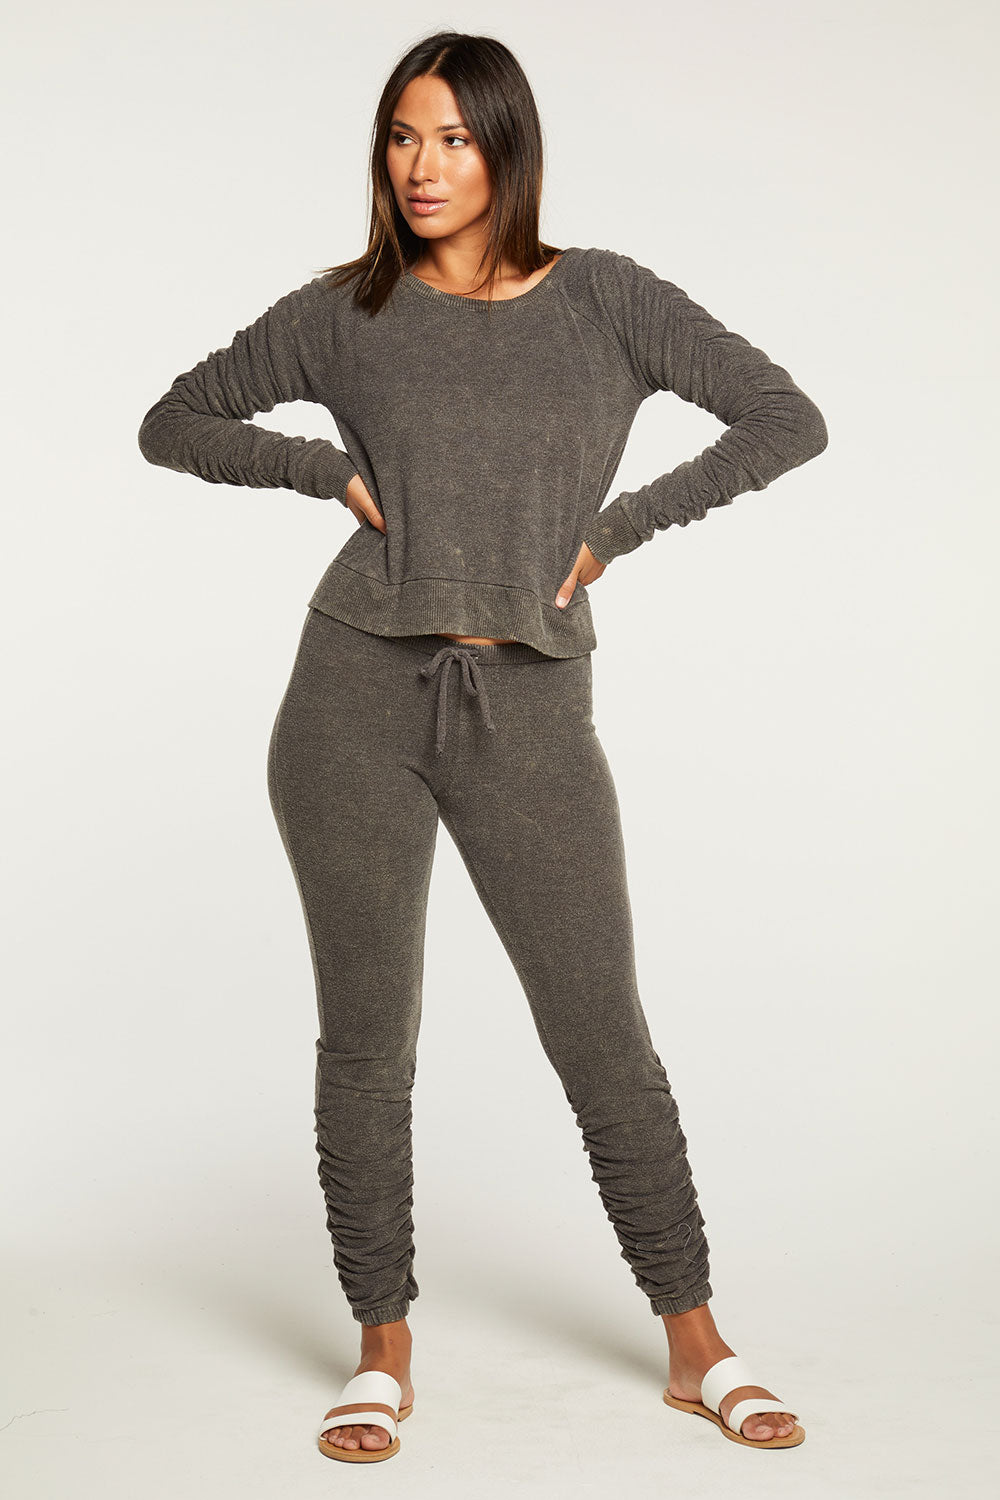 Bliss Knit Shirred Jogger WOMENS chaserbrand4.myshopify.com